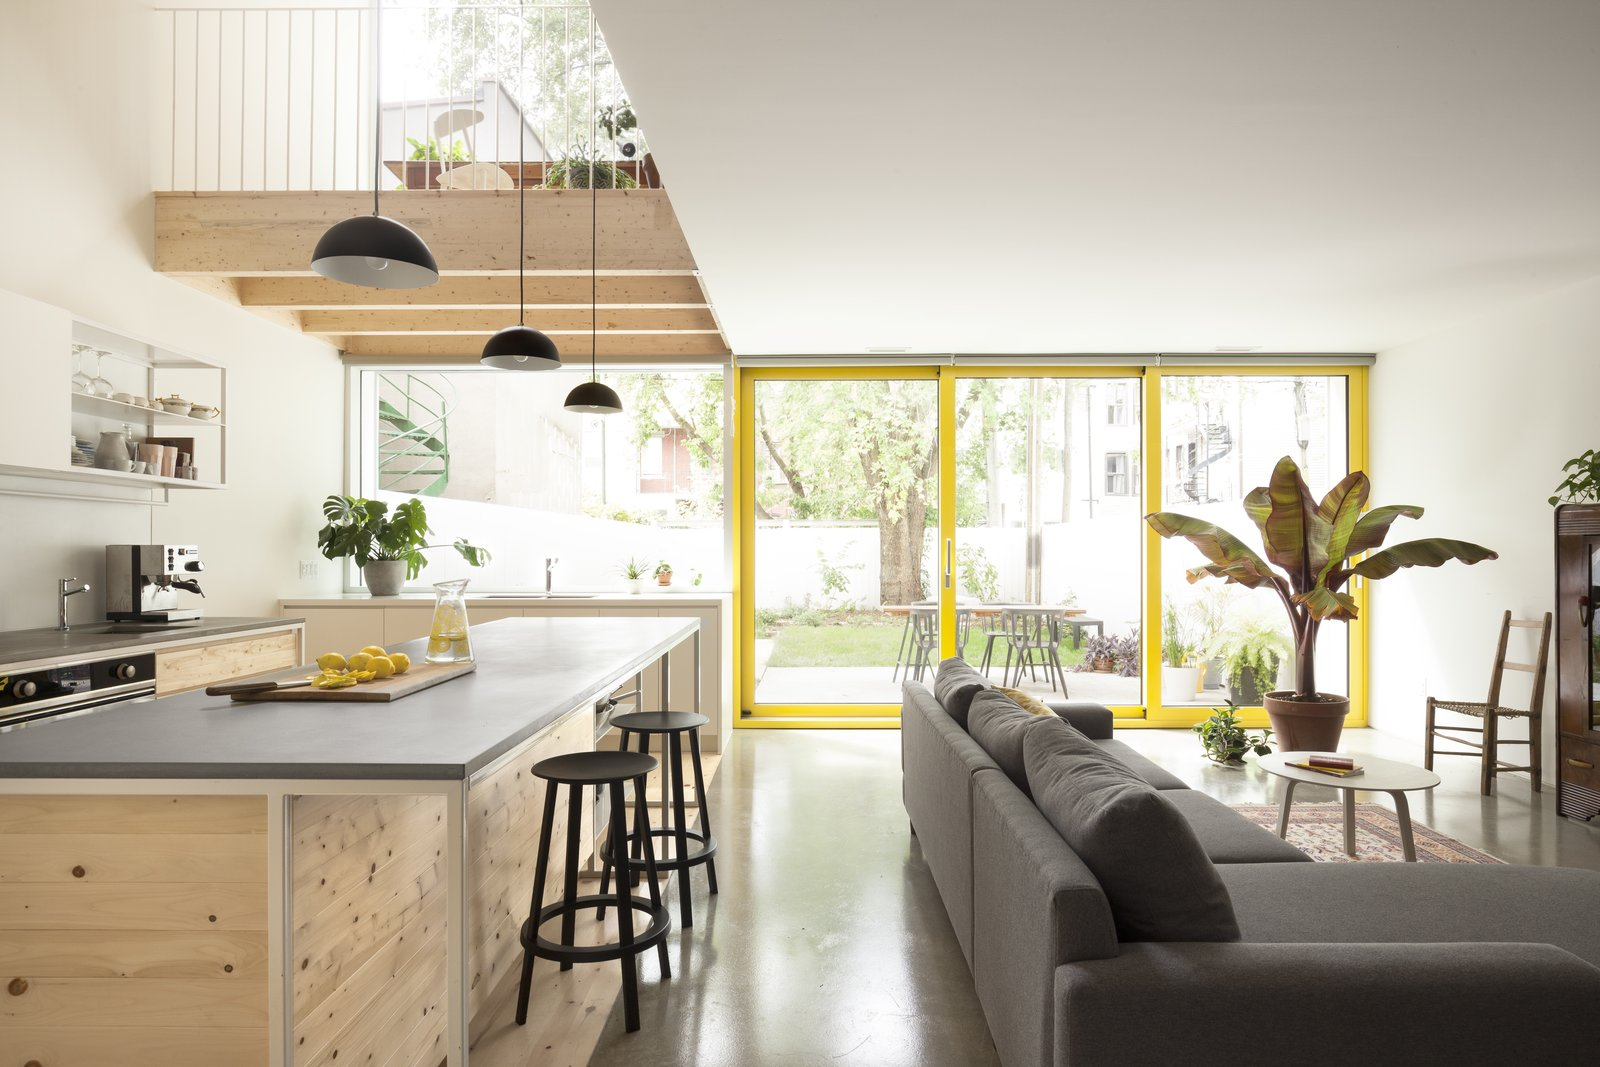 36 Stunning Before and After Modern Home Renovations  Dwell